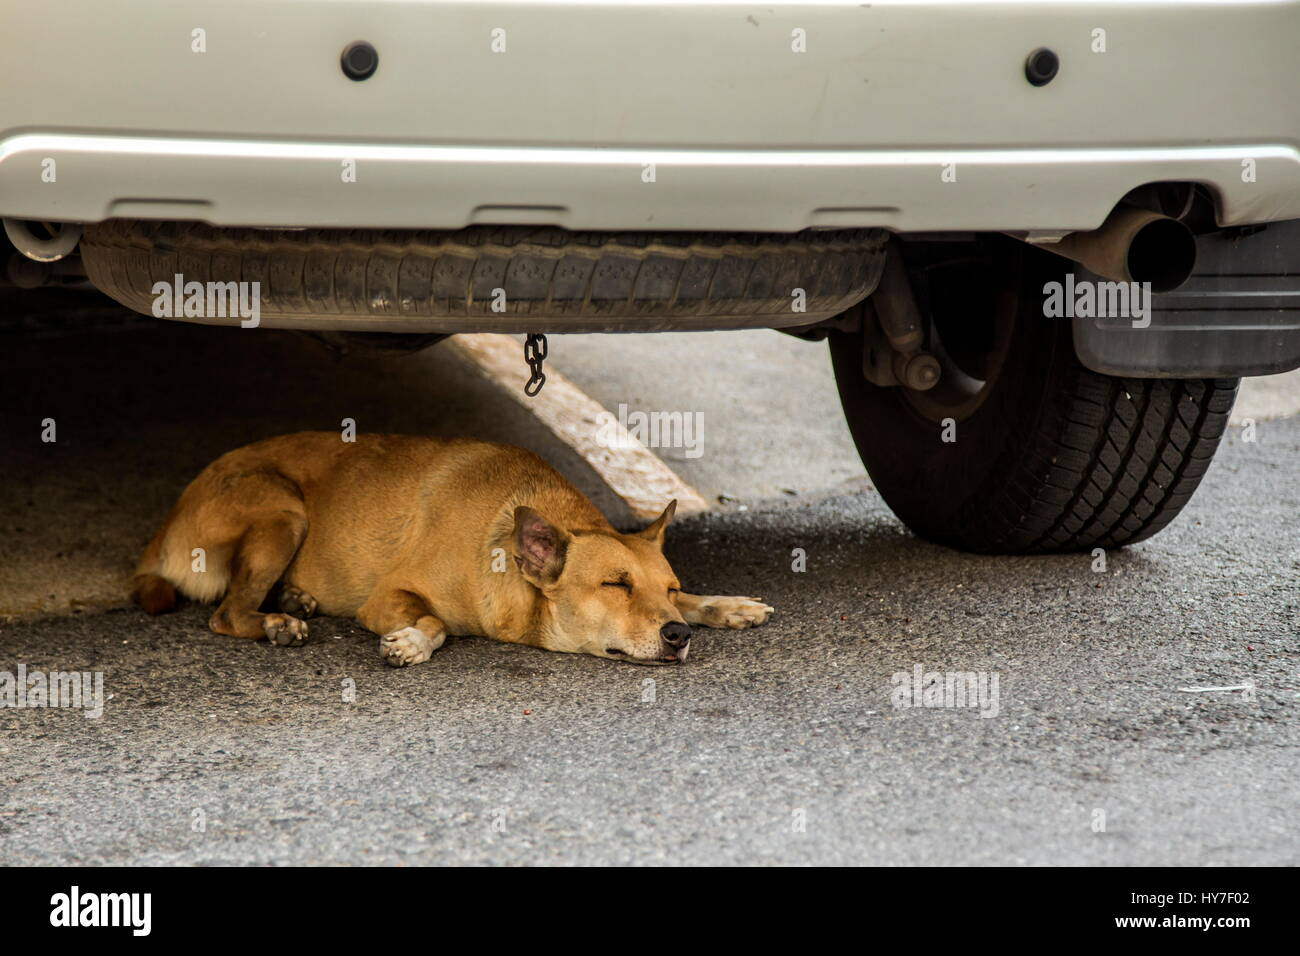 Sleeping dog under the SUV car - Stock Image